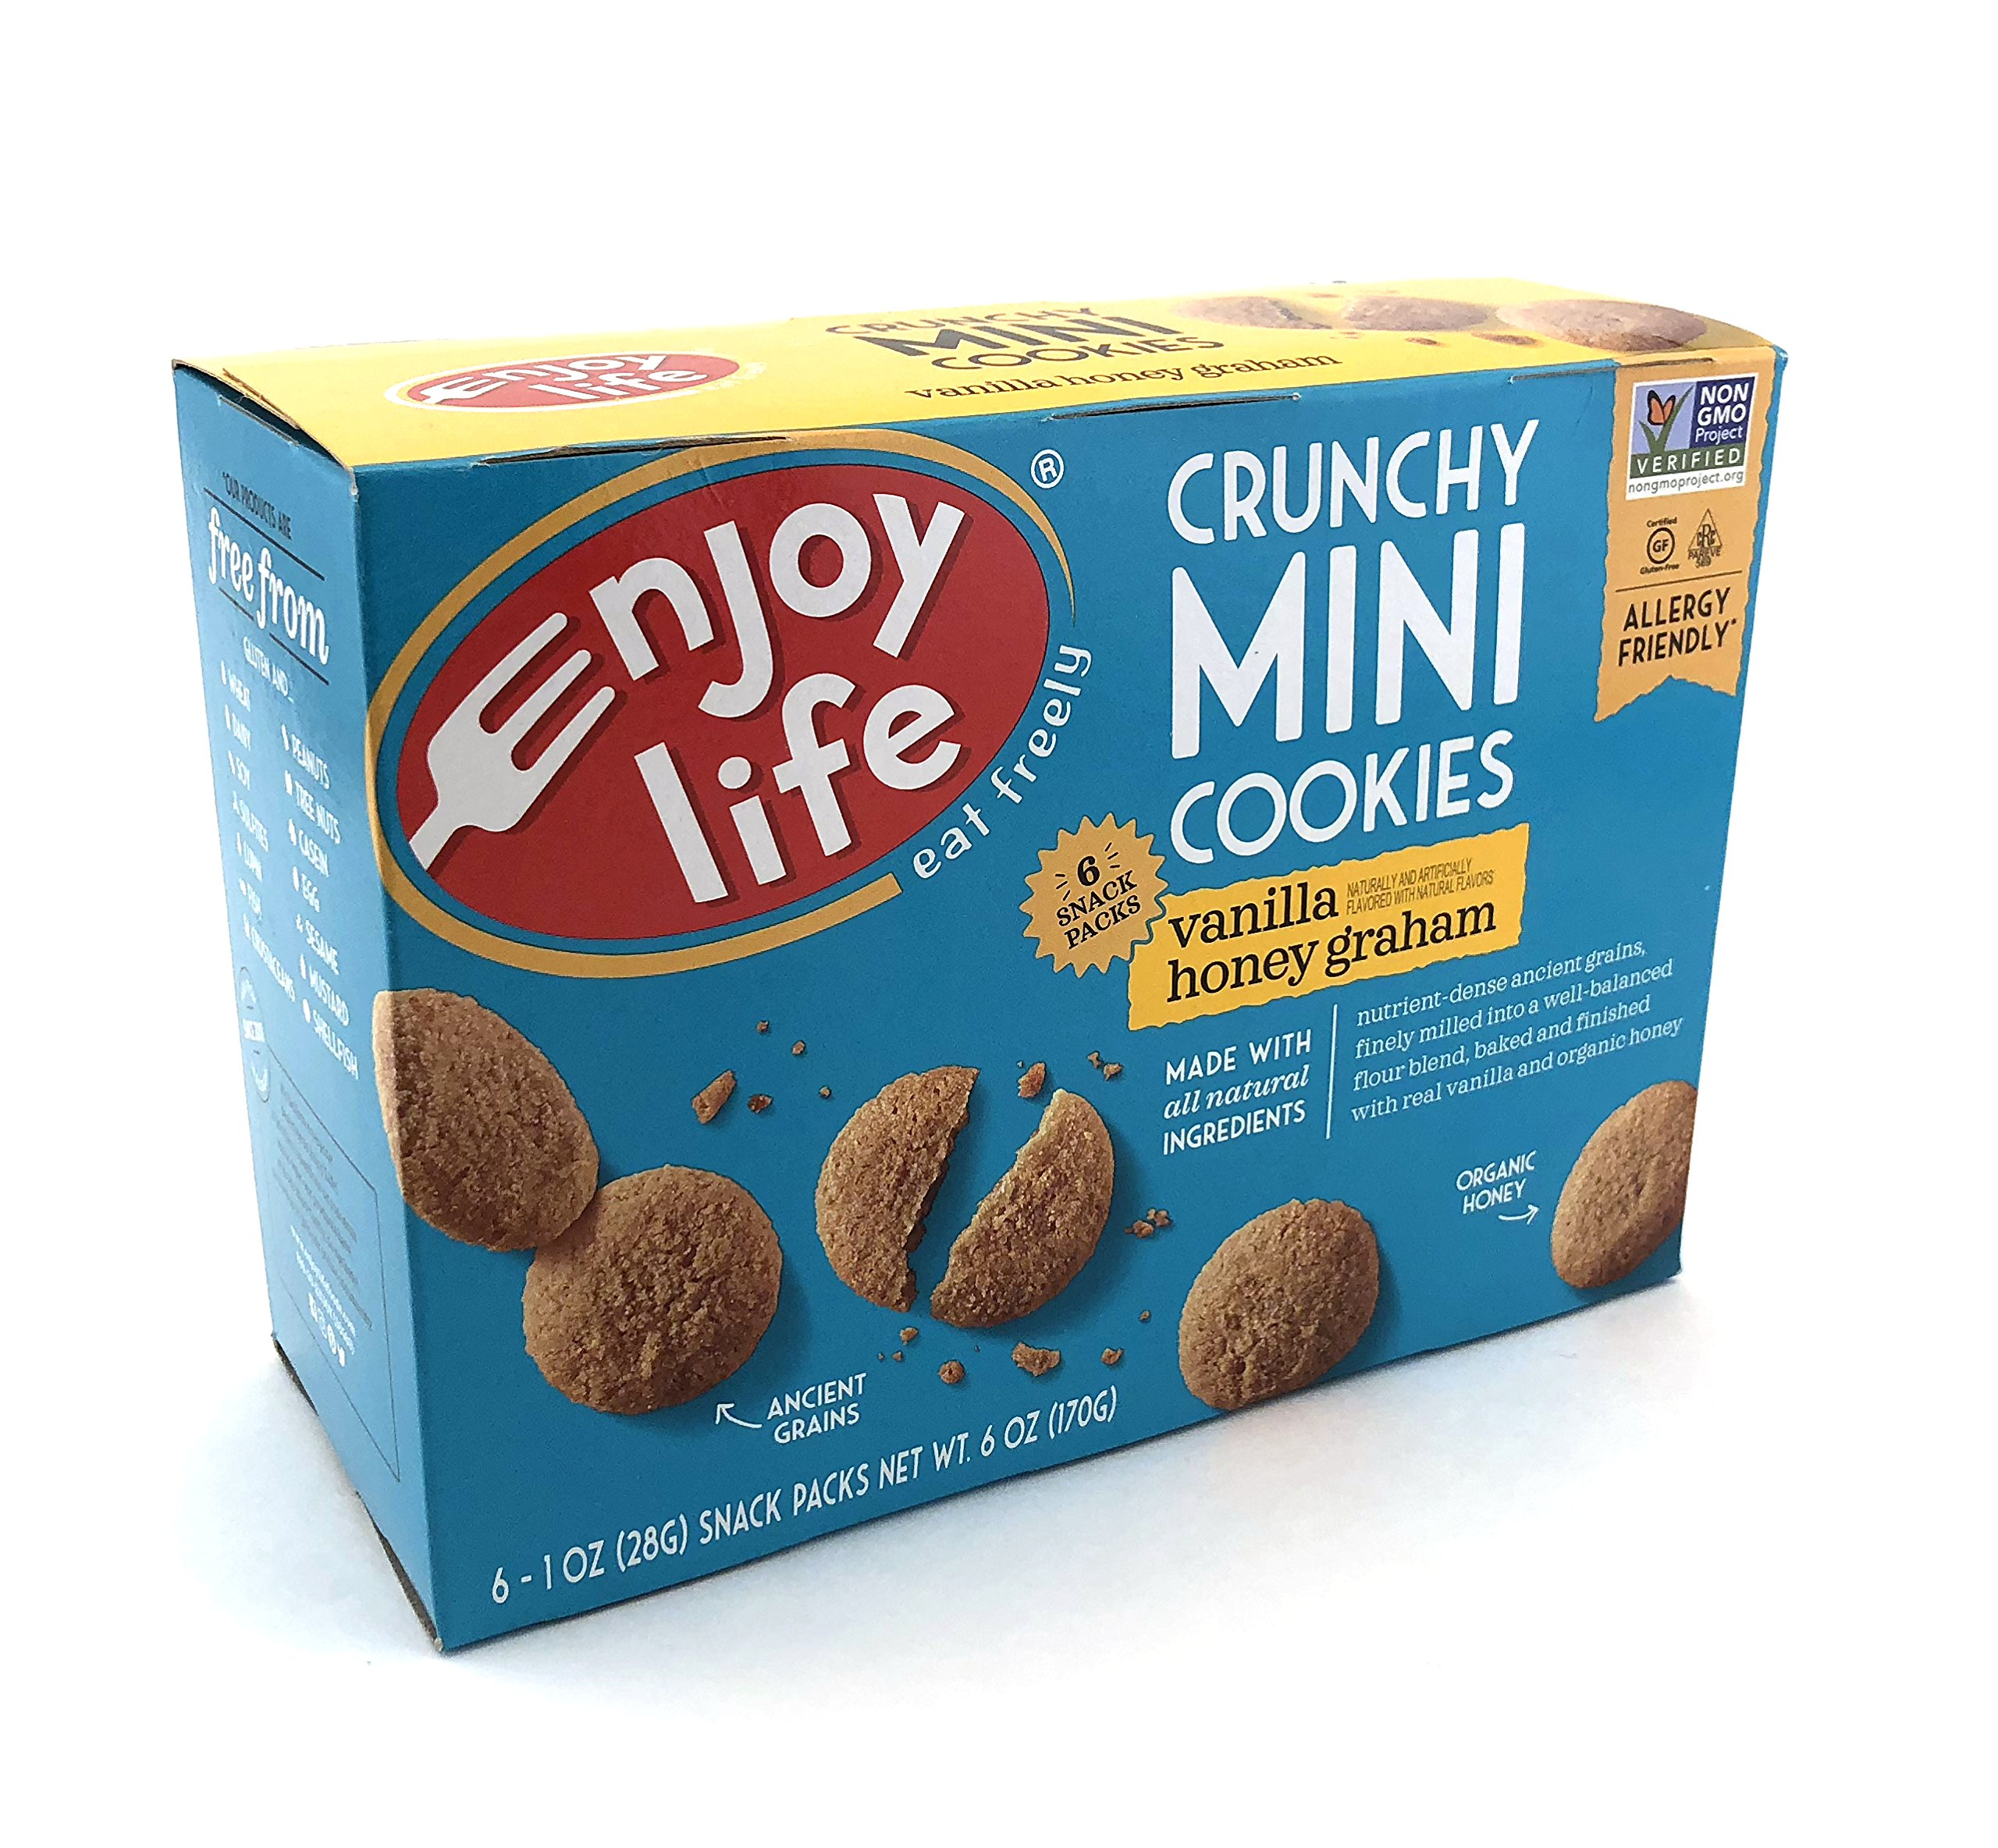 Enjoy Life Crunchy Minis Cookies, Vanilla Honey Graham, Gluten Free 6 Snack Packs (Pack of 6) by Enjoy Life Foods